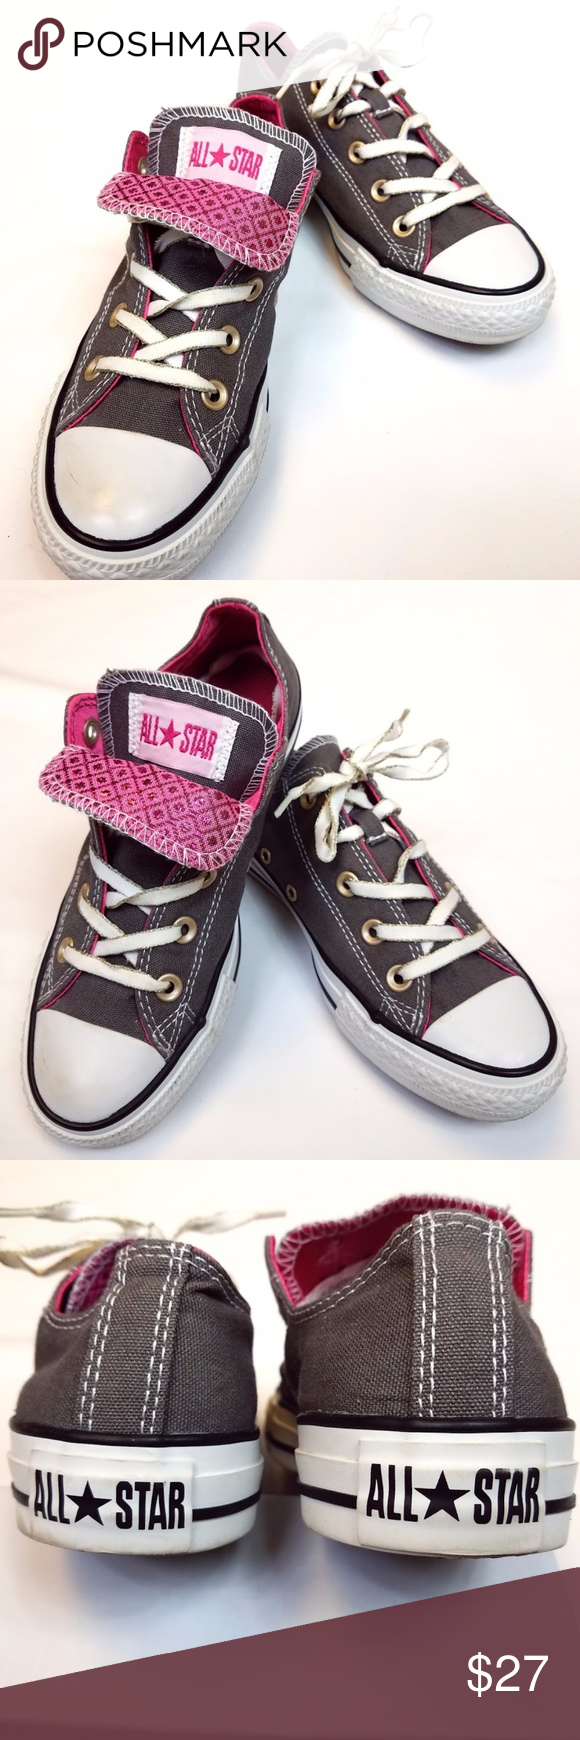 Look - How to double wear tongue converse shoes video